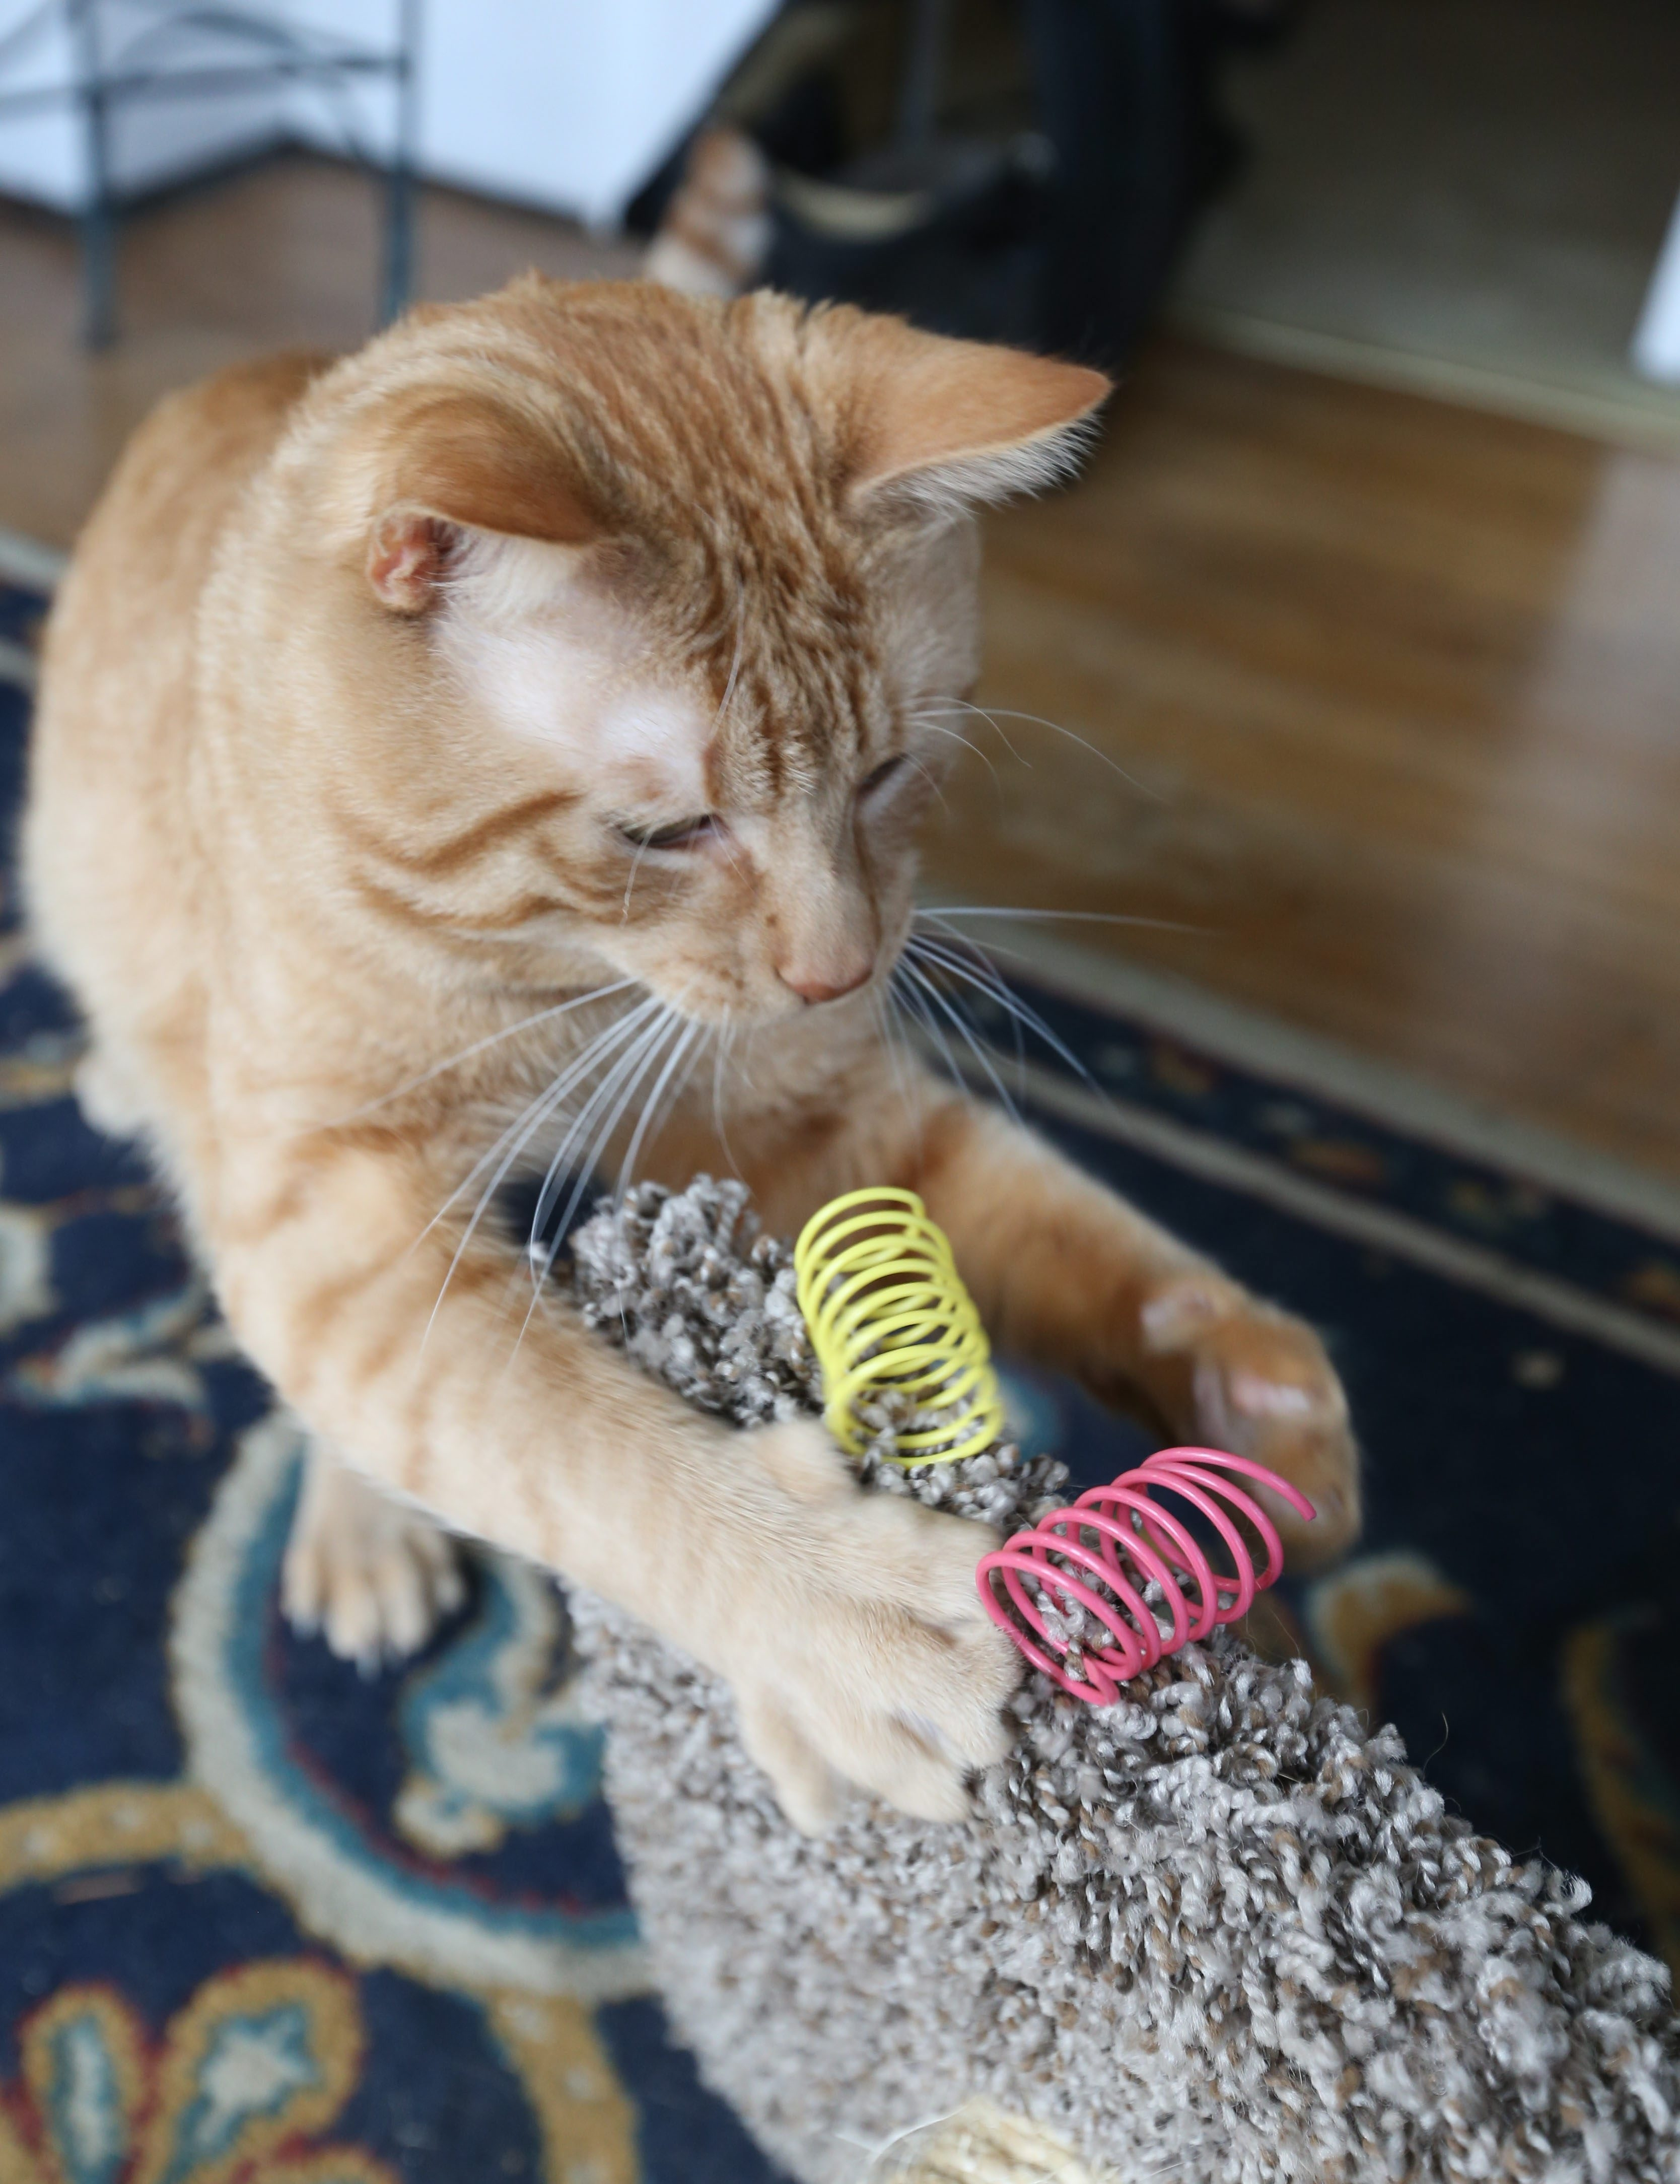 Mary Kunz Goldman, a first-time pet owner, is enjoying the rambunctious personality of her cat Jeoffry, Thursday, March 24, 2016.  The simplest toys often are the best.  Jeoffry loves the spirals.  (Sharon Cantillon/Buffalo News)